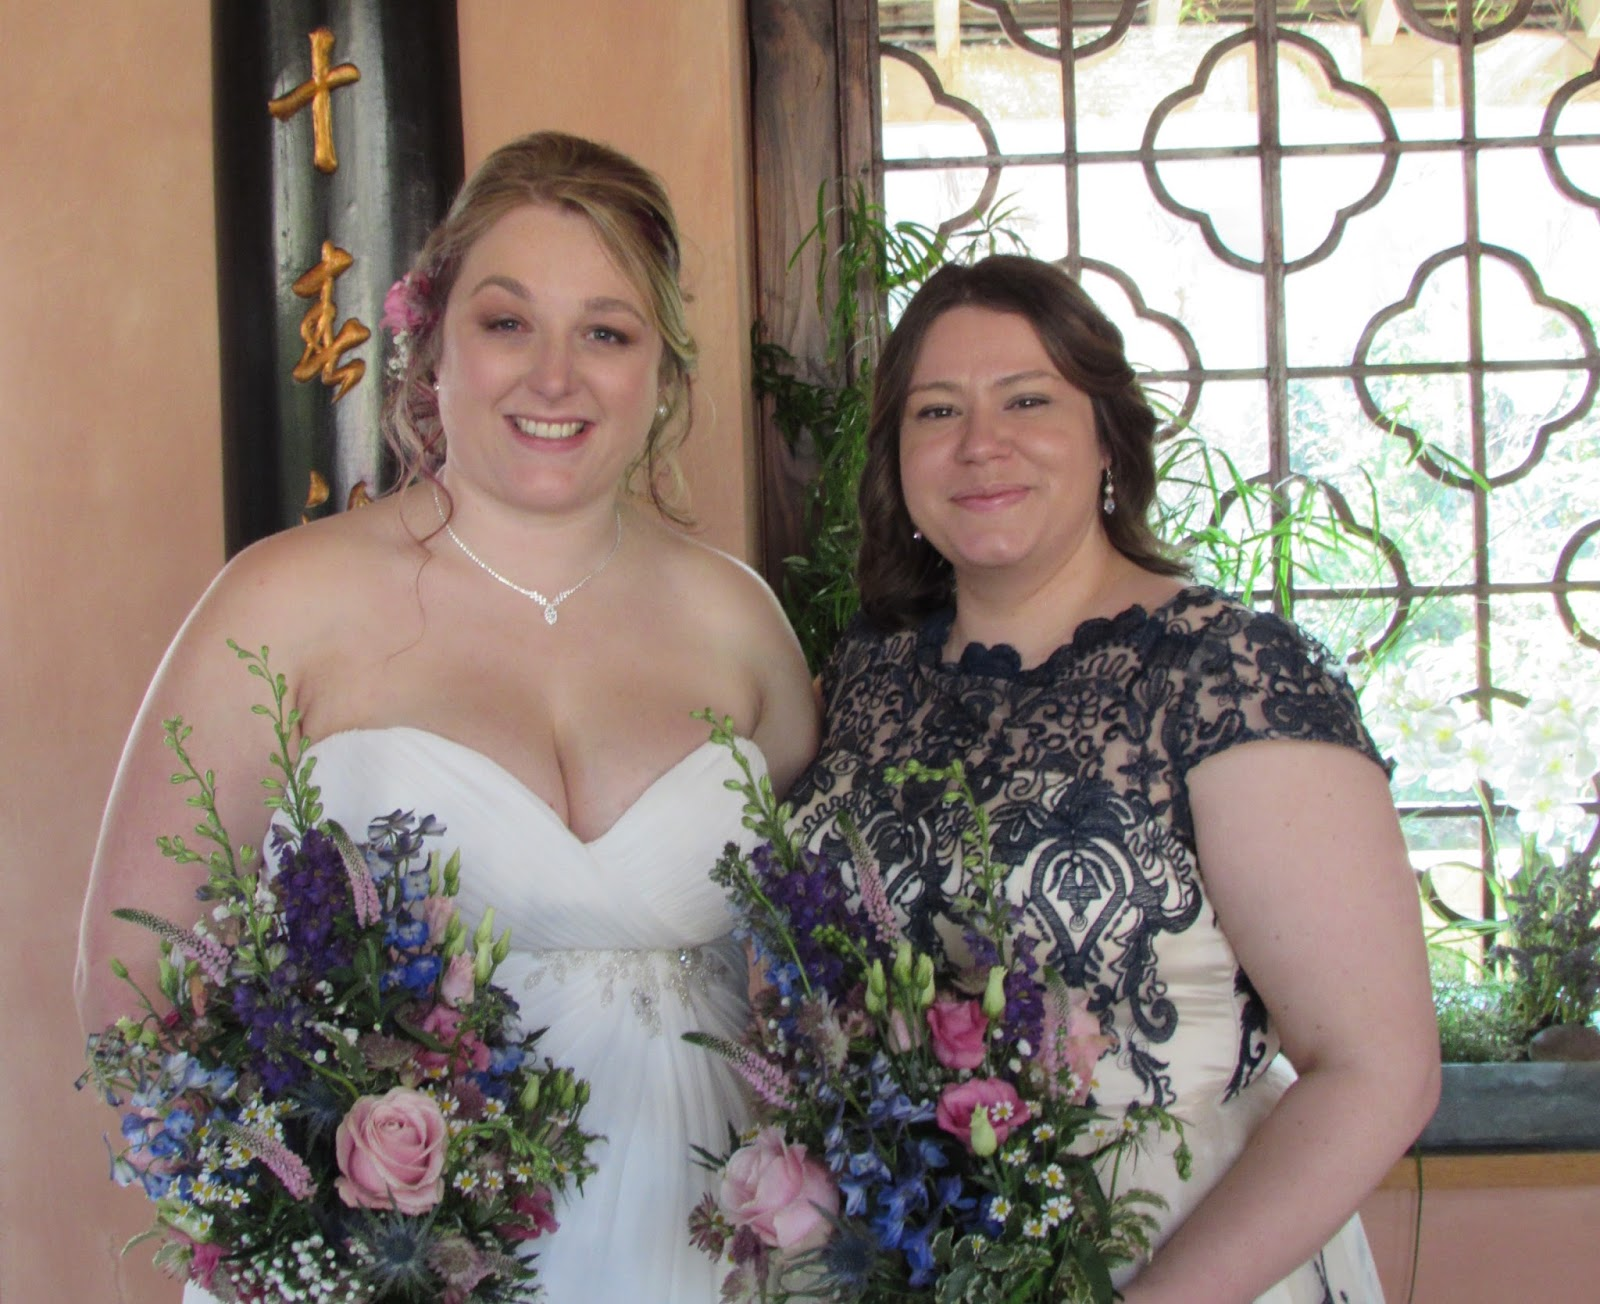 Me & the beautiful bride